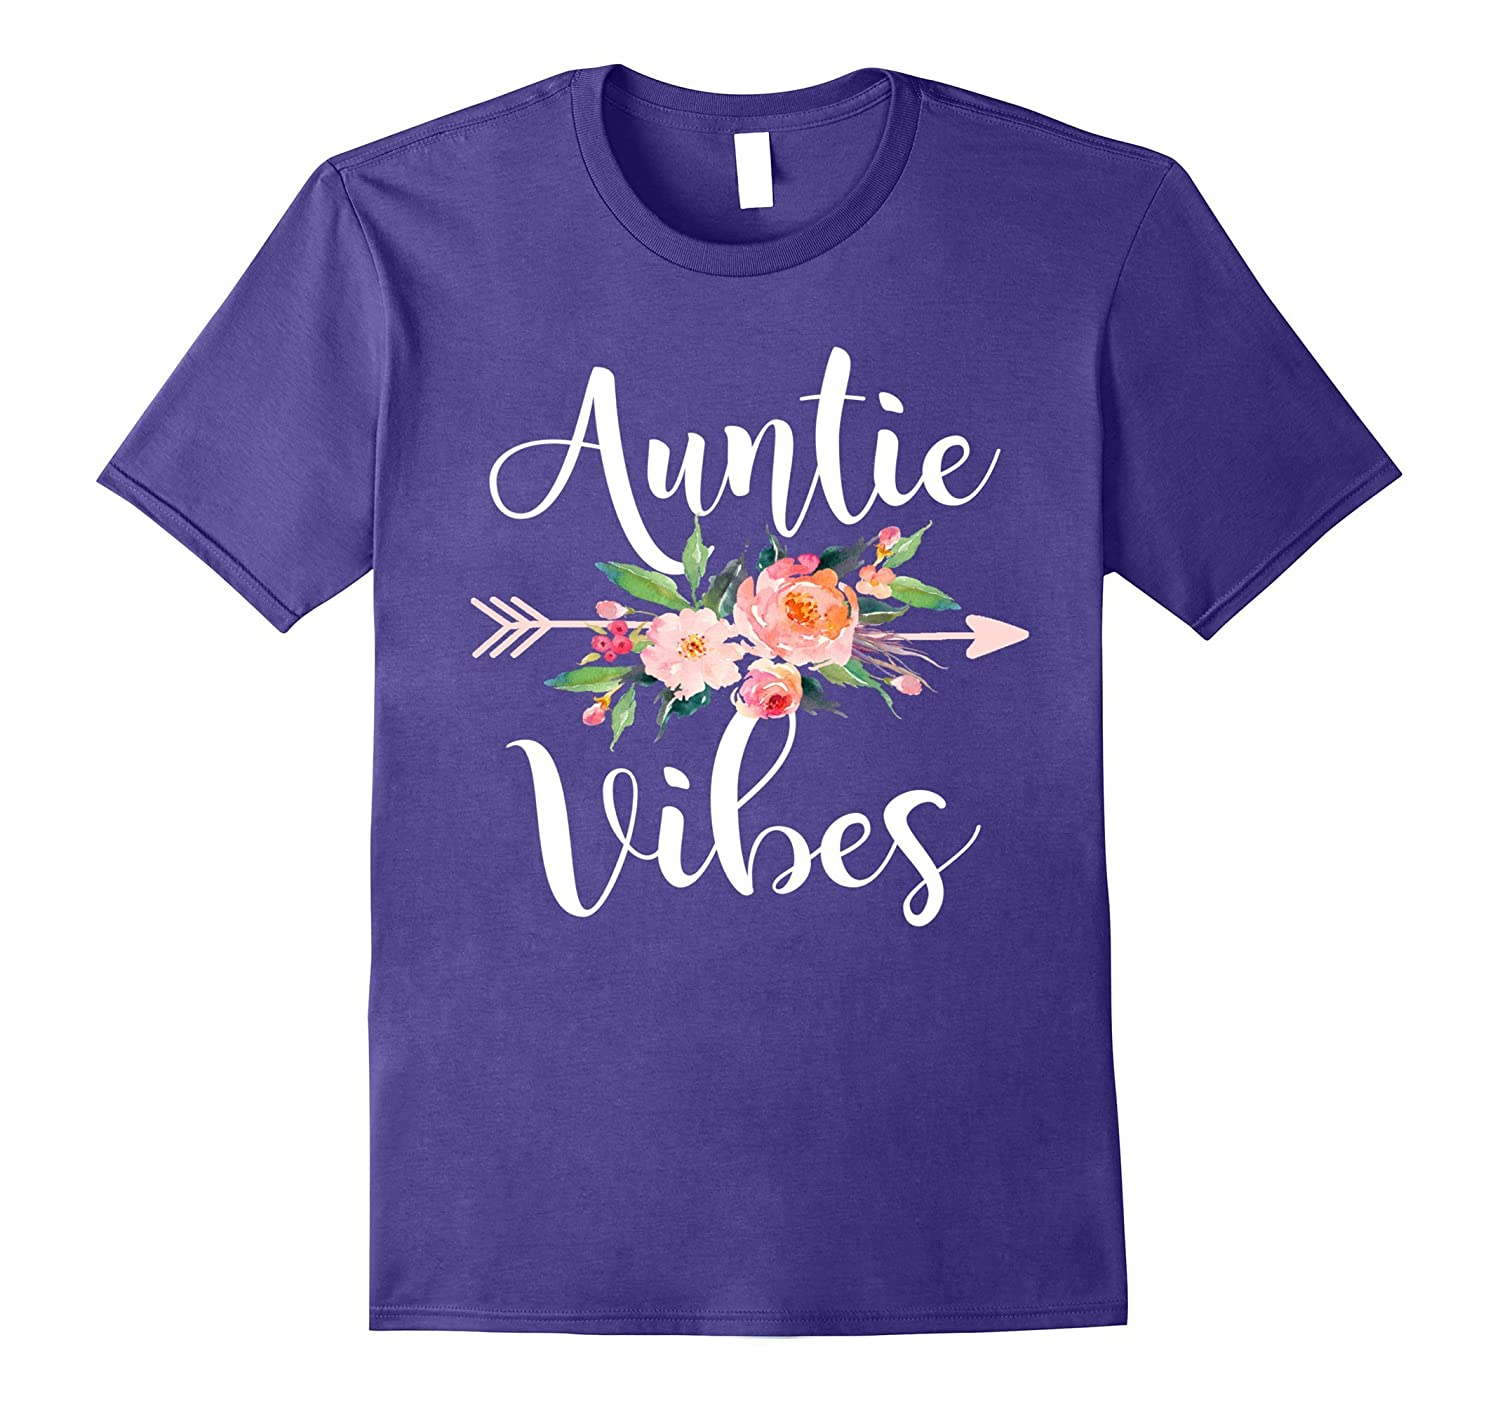 Auntie Vibes Cute aunt life shirt-TJ